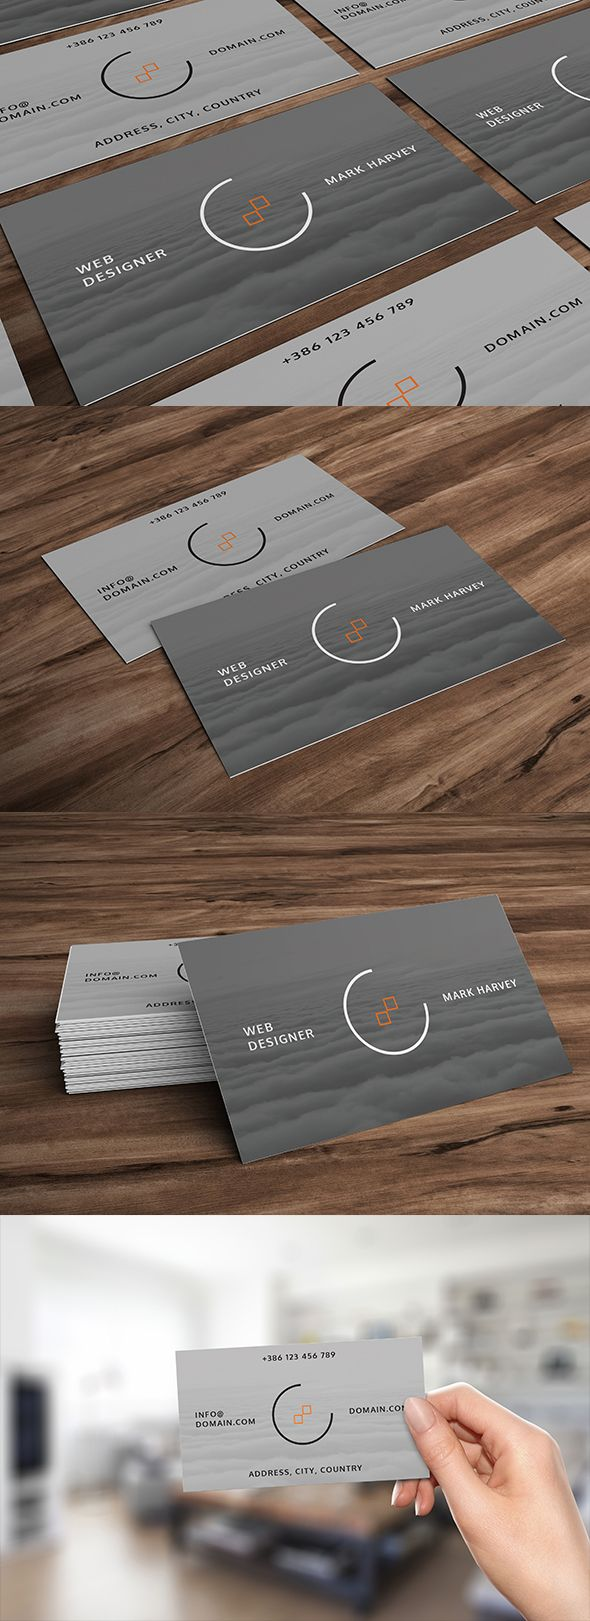 Simple and clean looking business card #design #graphicdesign #businesscard